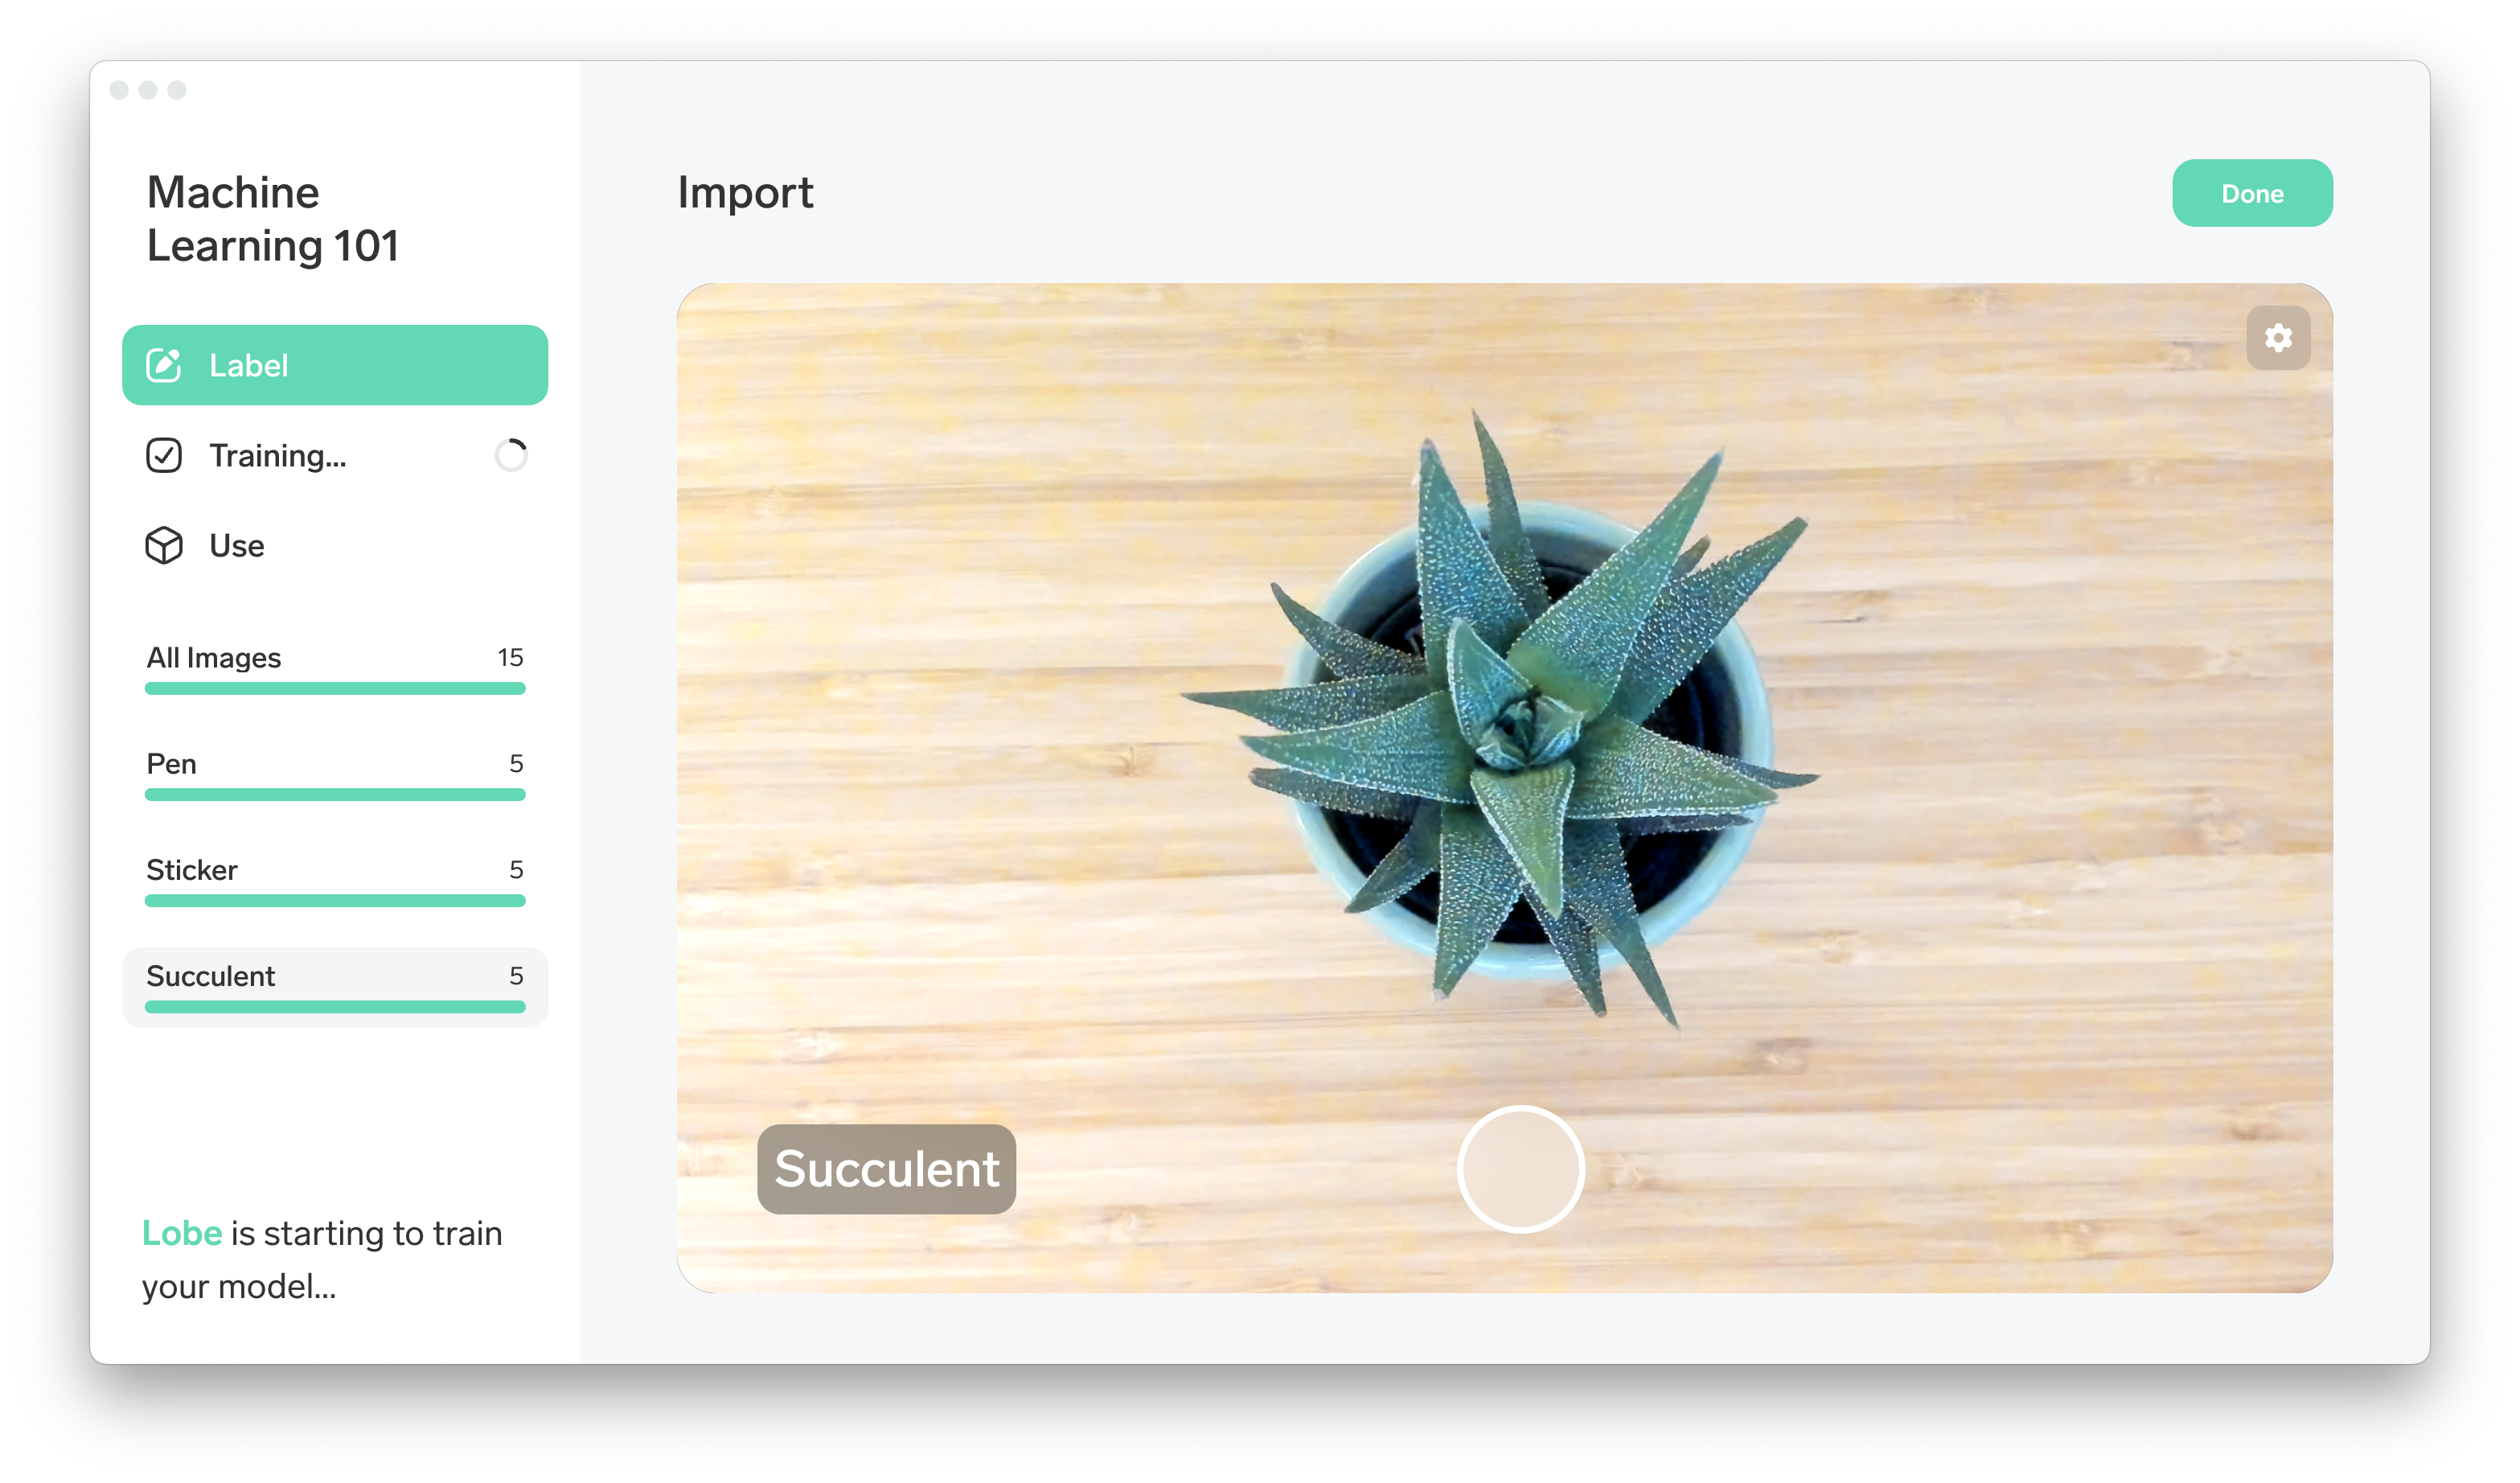 adafruit_products_3._Succulent_Updated.png